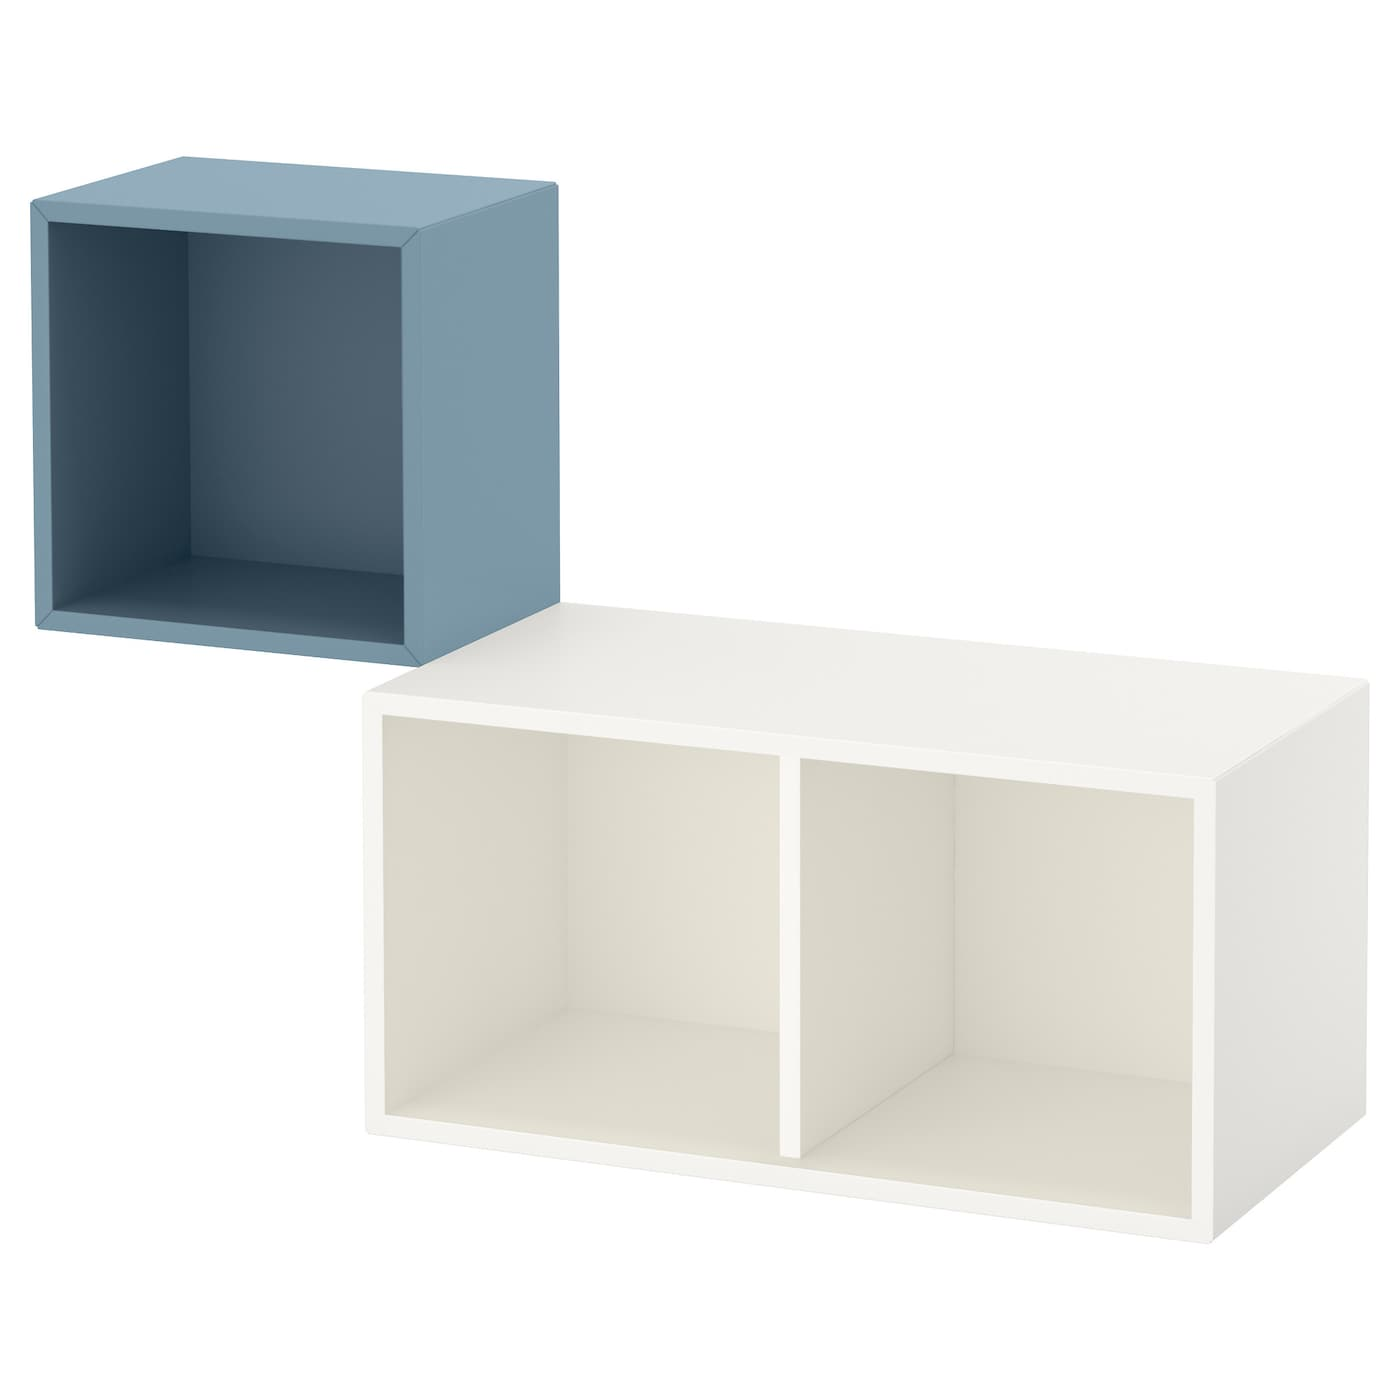 Eket wall mounted cabinet combination light blue white for Cube rangement mural ikea